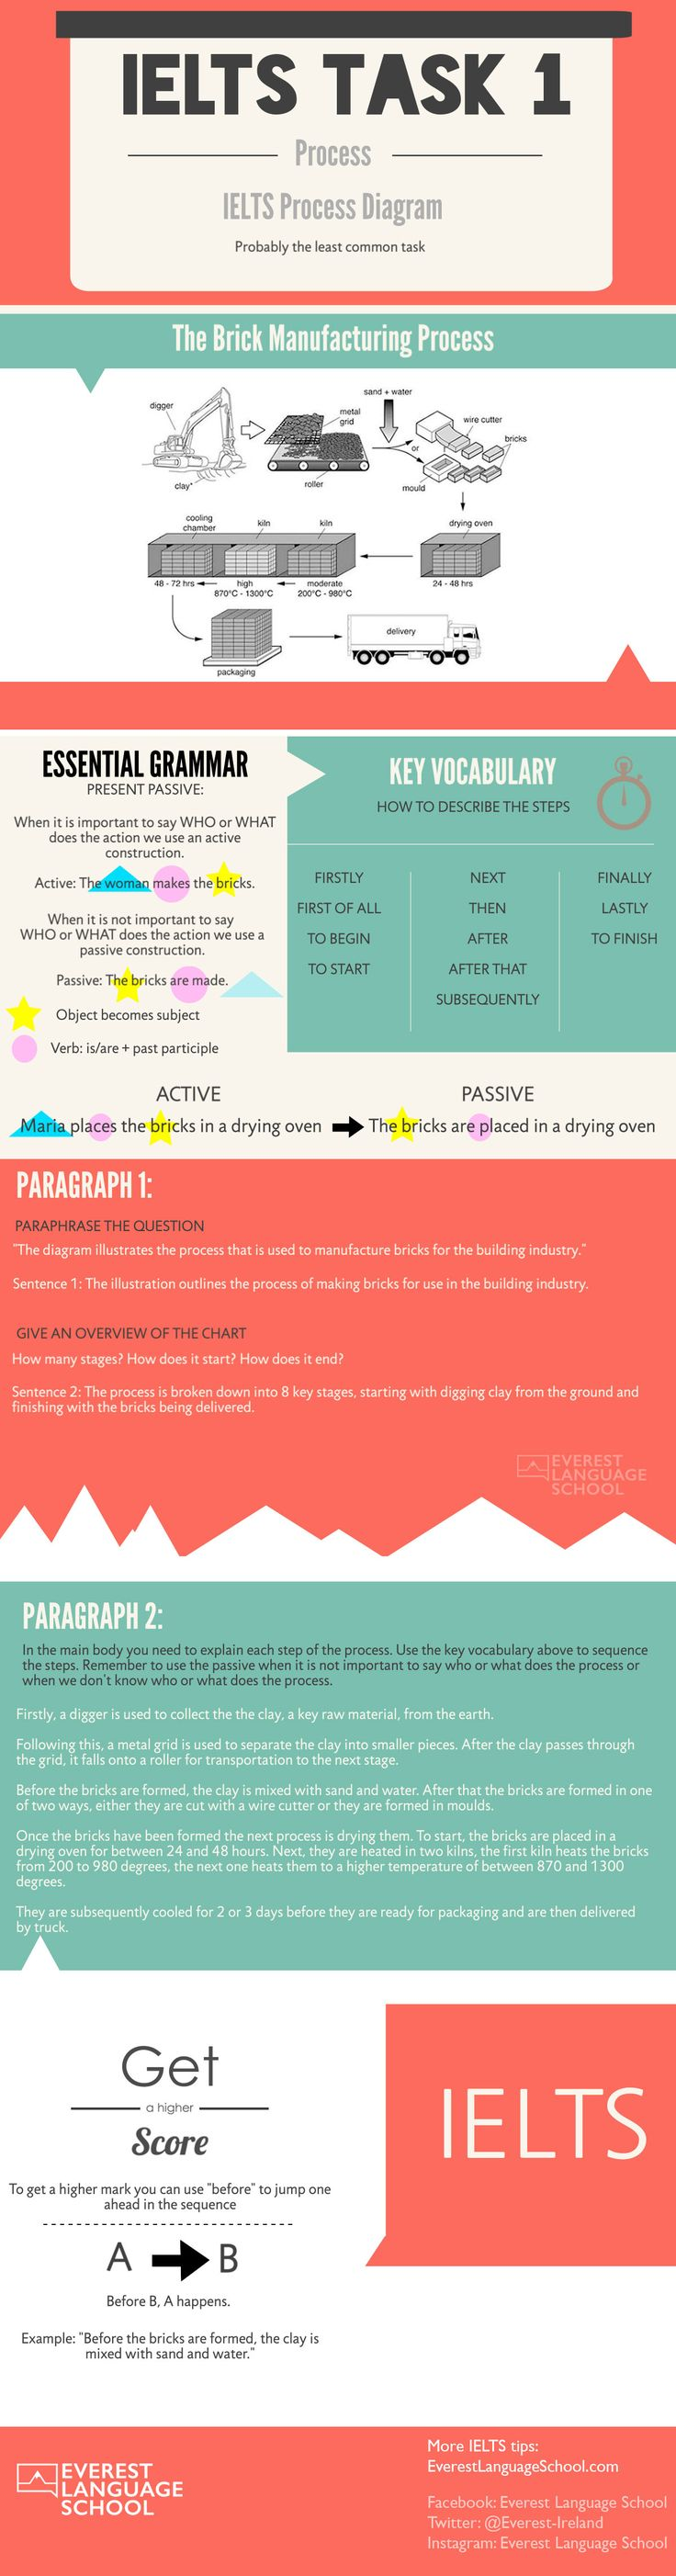 IELTS task 1 writing infographic. In this infographic we explain how to answer an task 1 writing describing a PROCESS or flow chart. -Free IELTS preparation